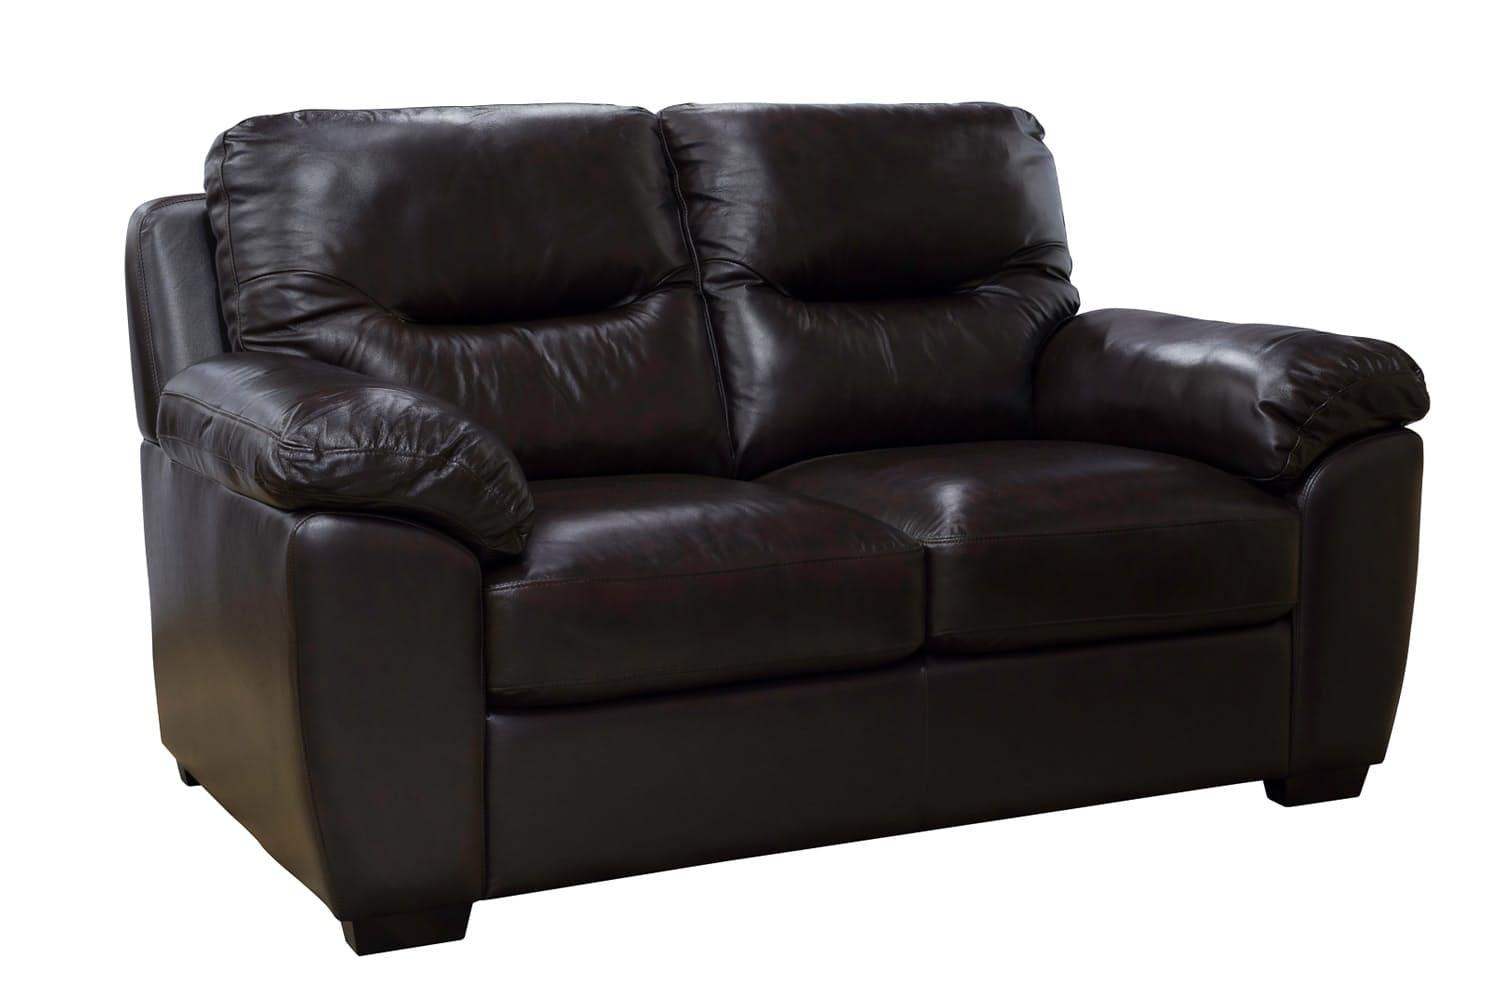 Astor 2 Seater Sofa